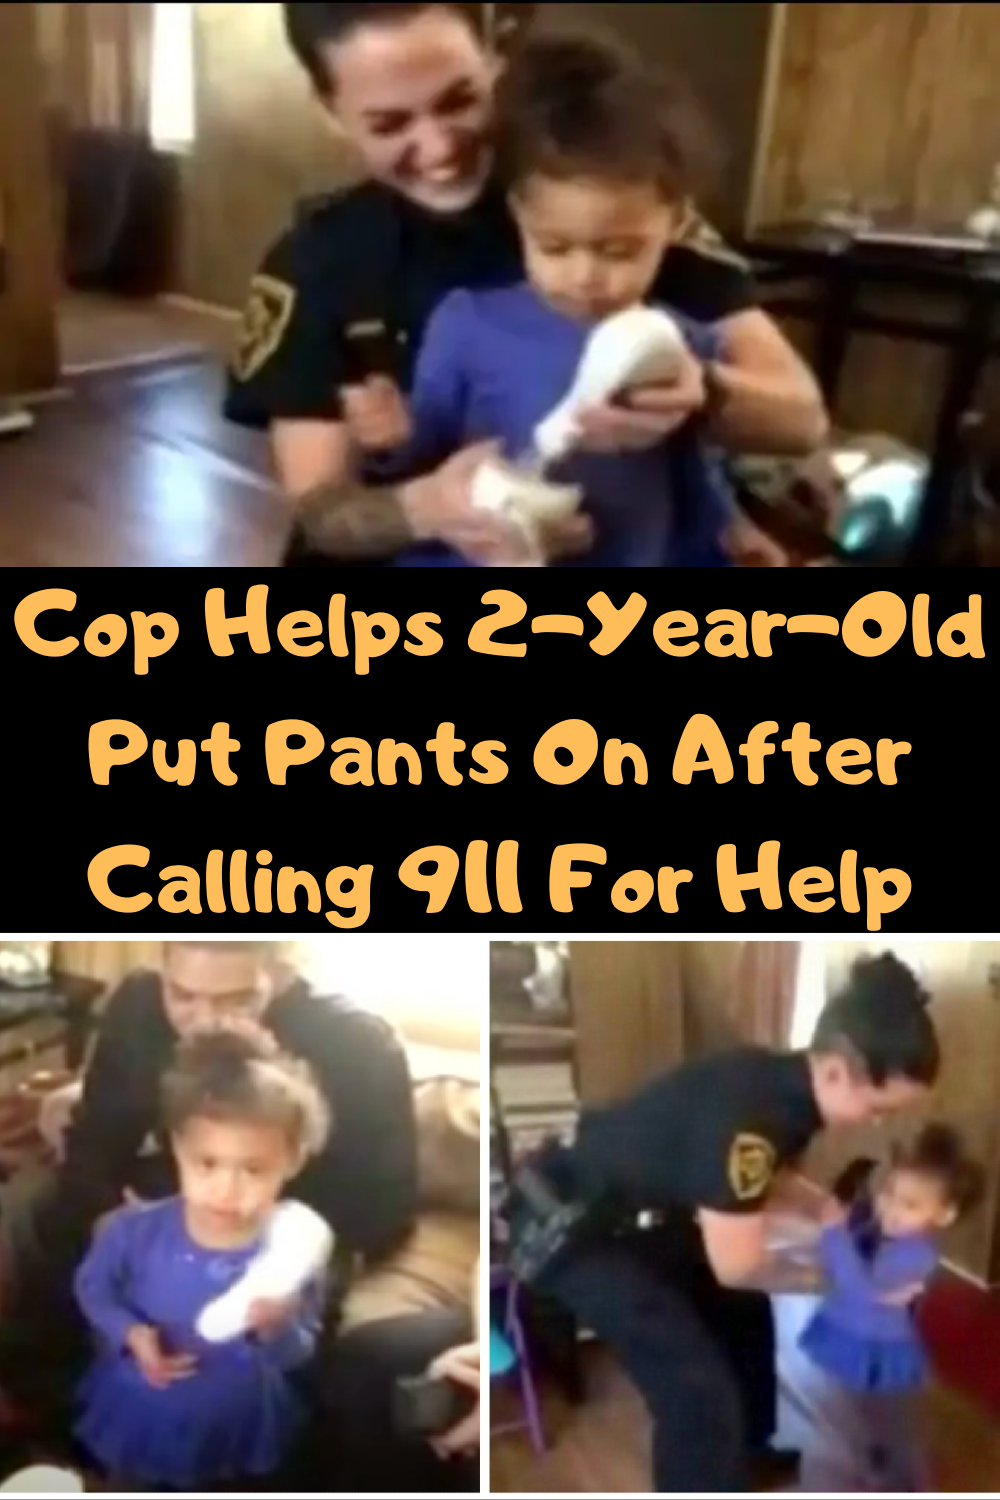 Cop Helps 2-Year-Old Put Pants On After Calling 911 For Help